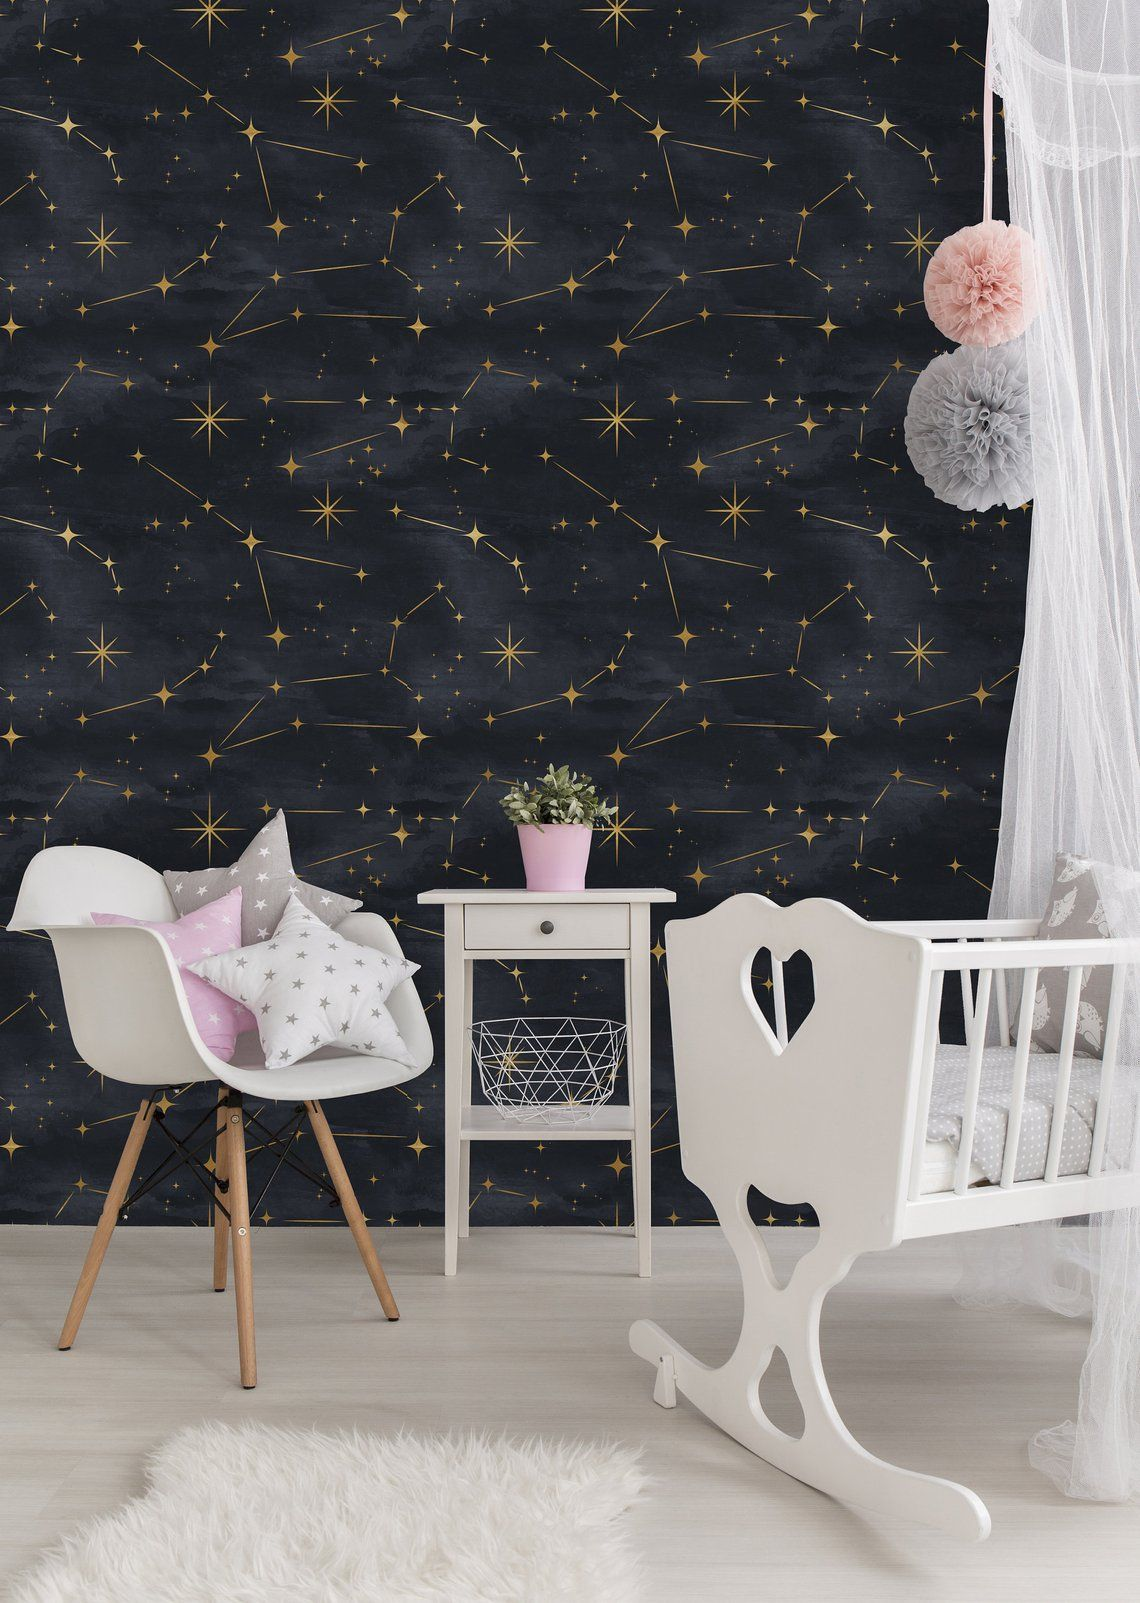 Removable Wallpaper Peel And Stick Wallpaper Self Adhesive Wallpaper Gold Stars On Black Background Removable Wallpaper Peel And Stick Wallpaper Home Wallpaper